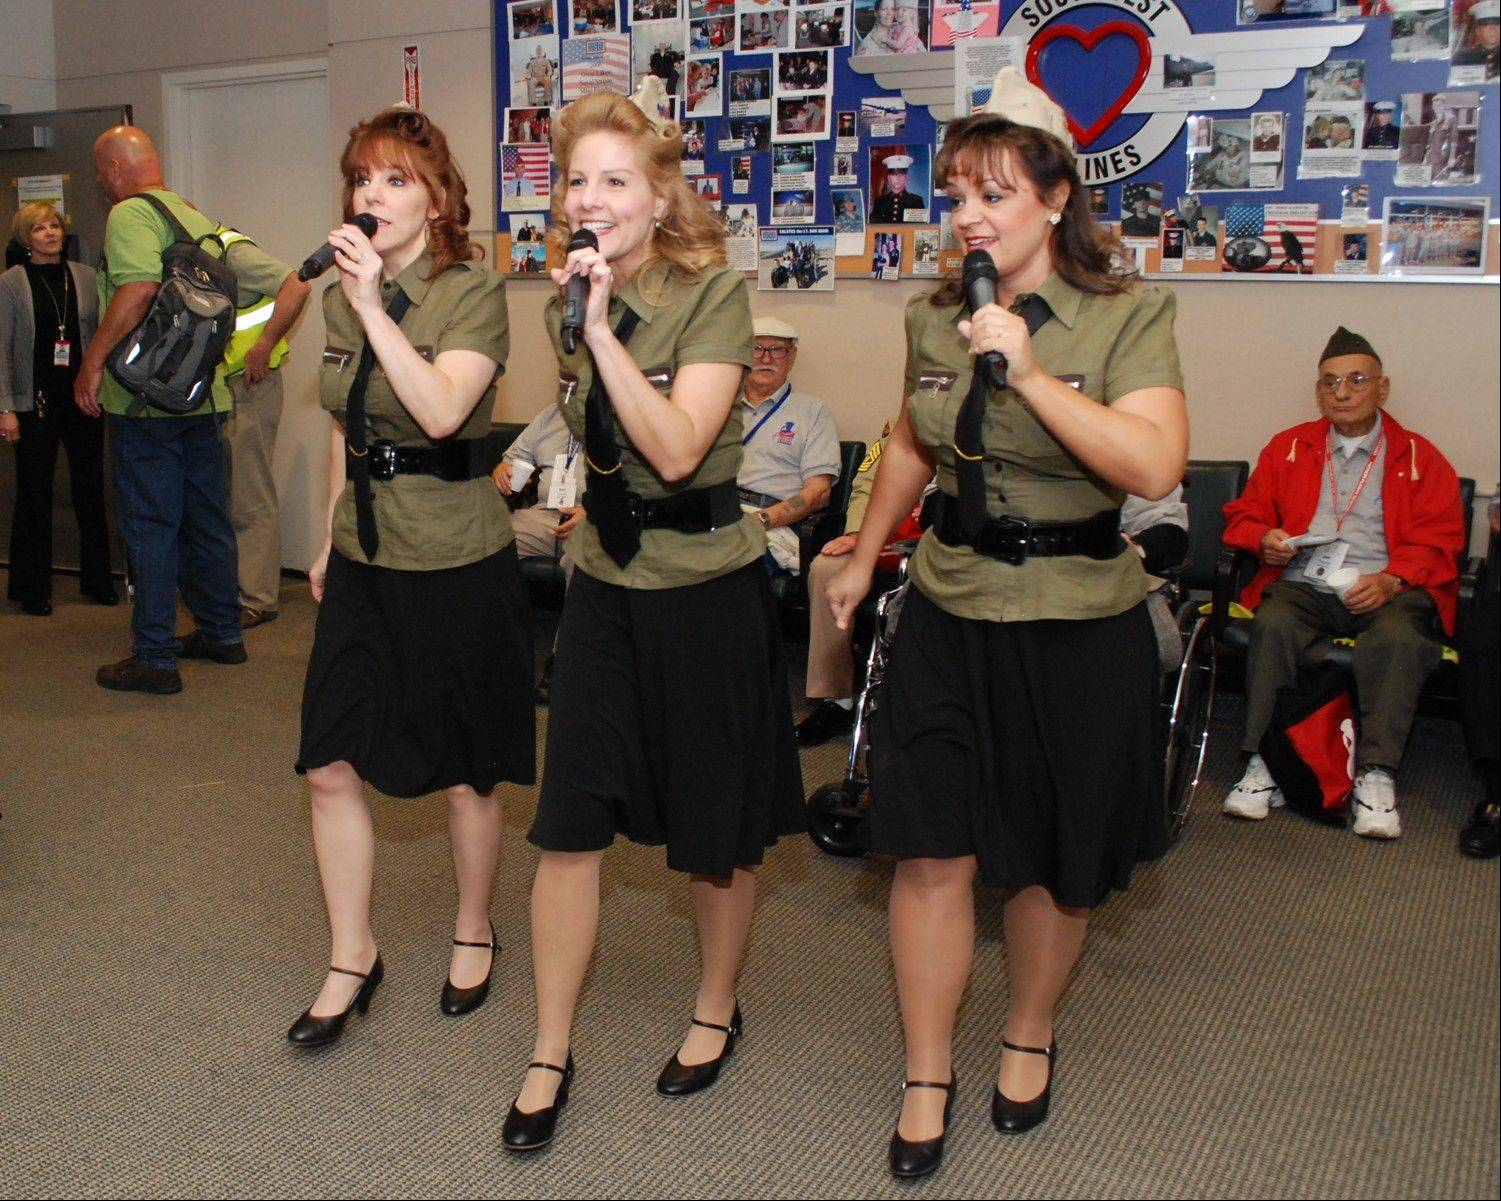 The Legacy Girls perform Andrews Sisters-style to entertain the veterans before the flight leaves from Midway Airport.